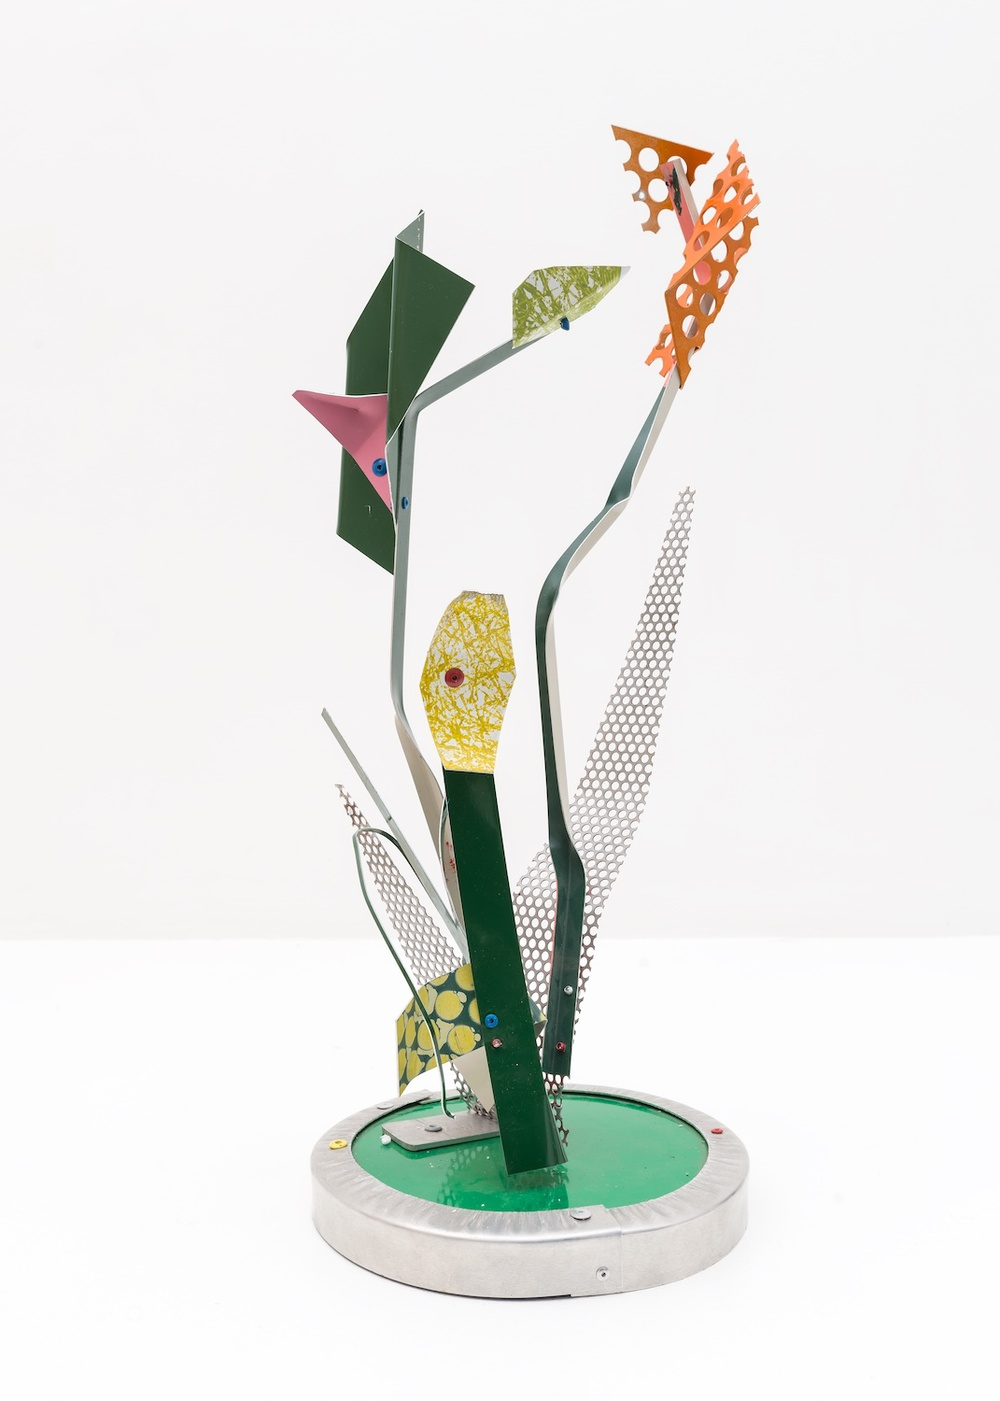 Jason Meadows  Wildflower  2015 Painted aluminum 22 ¾h x 9w x 8 ¾d in  JM020